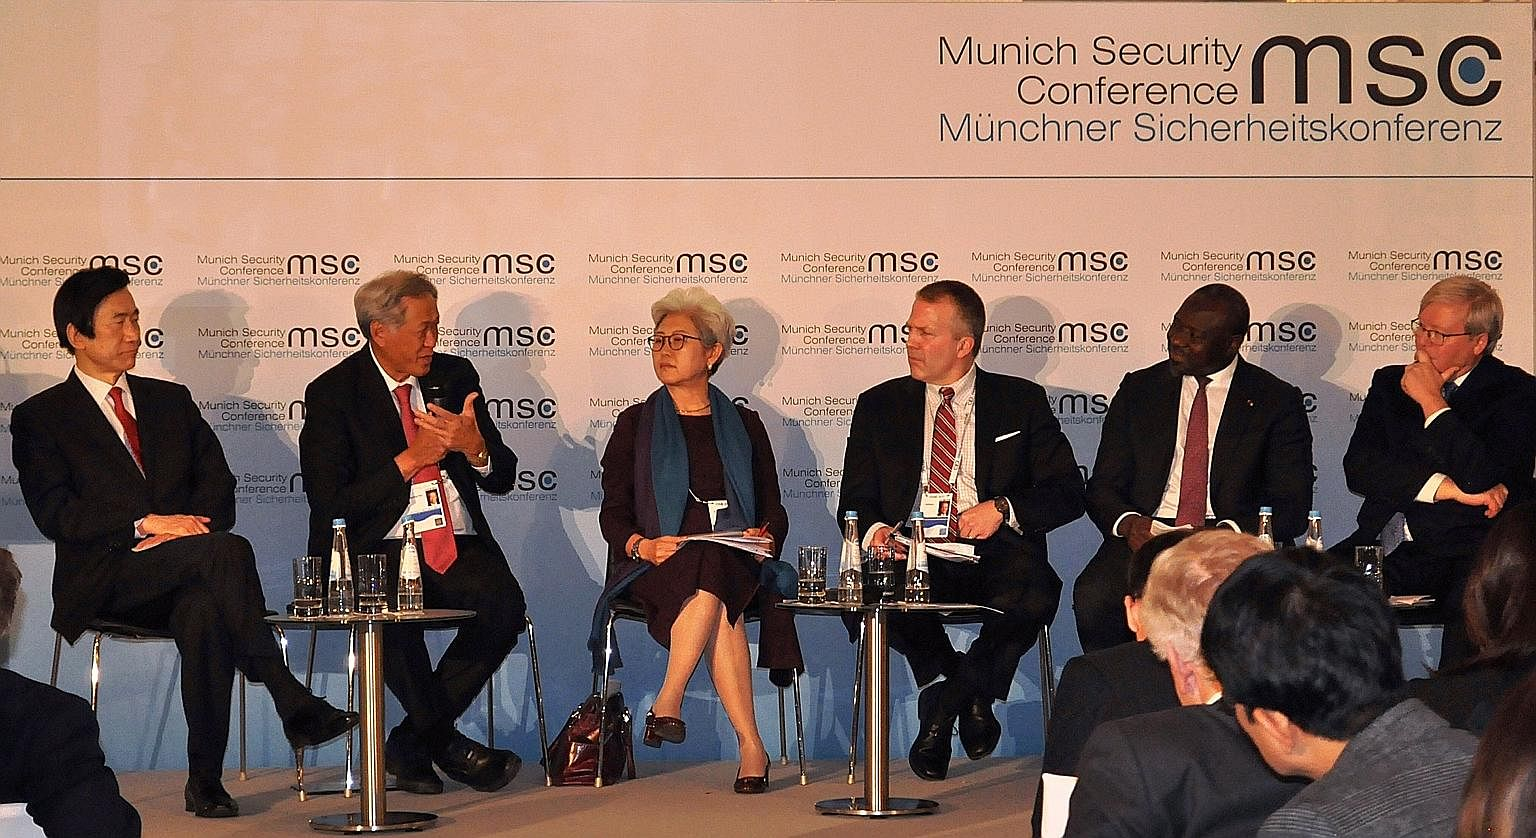 Defence Minister Ng Eng Hen (second from left) speaking at a panel during the Munich Security Conference last Saturday. The panel also included (from left) South Korean Foreign Minister Yun Byung Se, Ms Fu Ying, chairman of the Foreign Affairs Commit